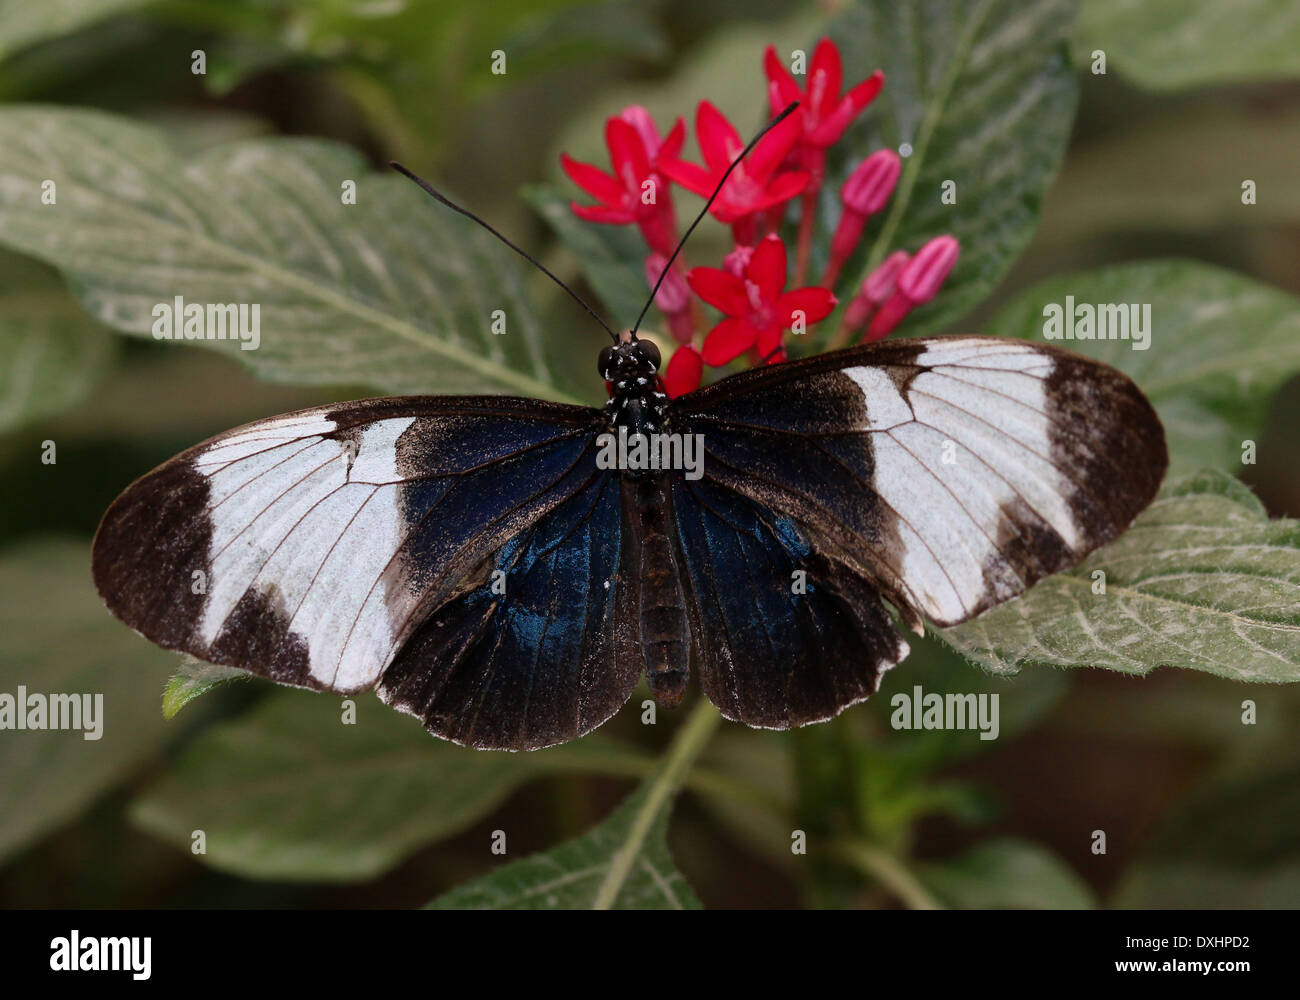 Sapho Longwing (Heliconius sapho) with wings opened, foraging on a red flower - Stock Image